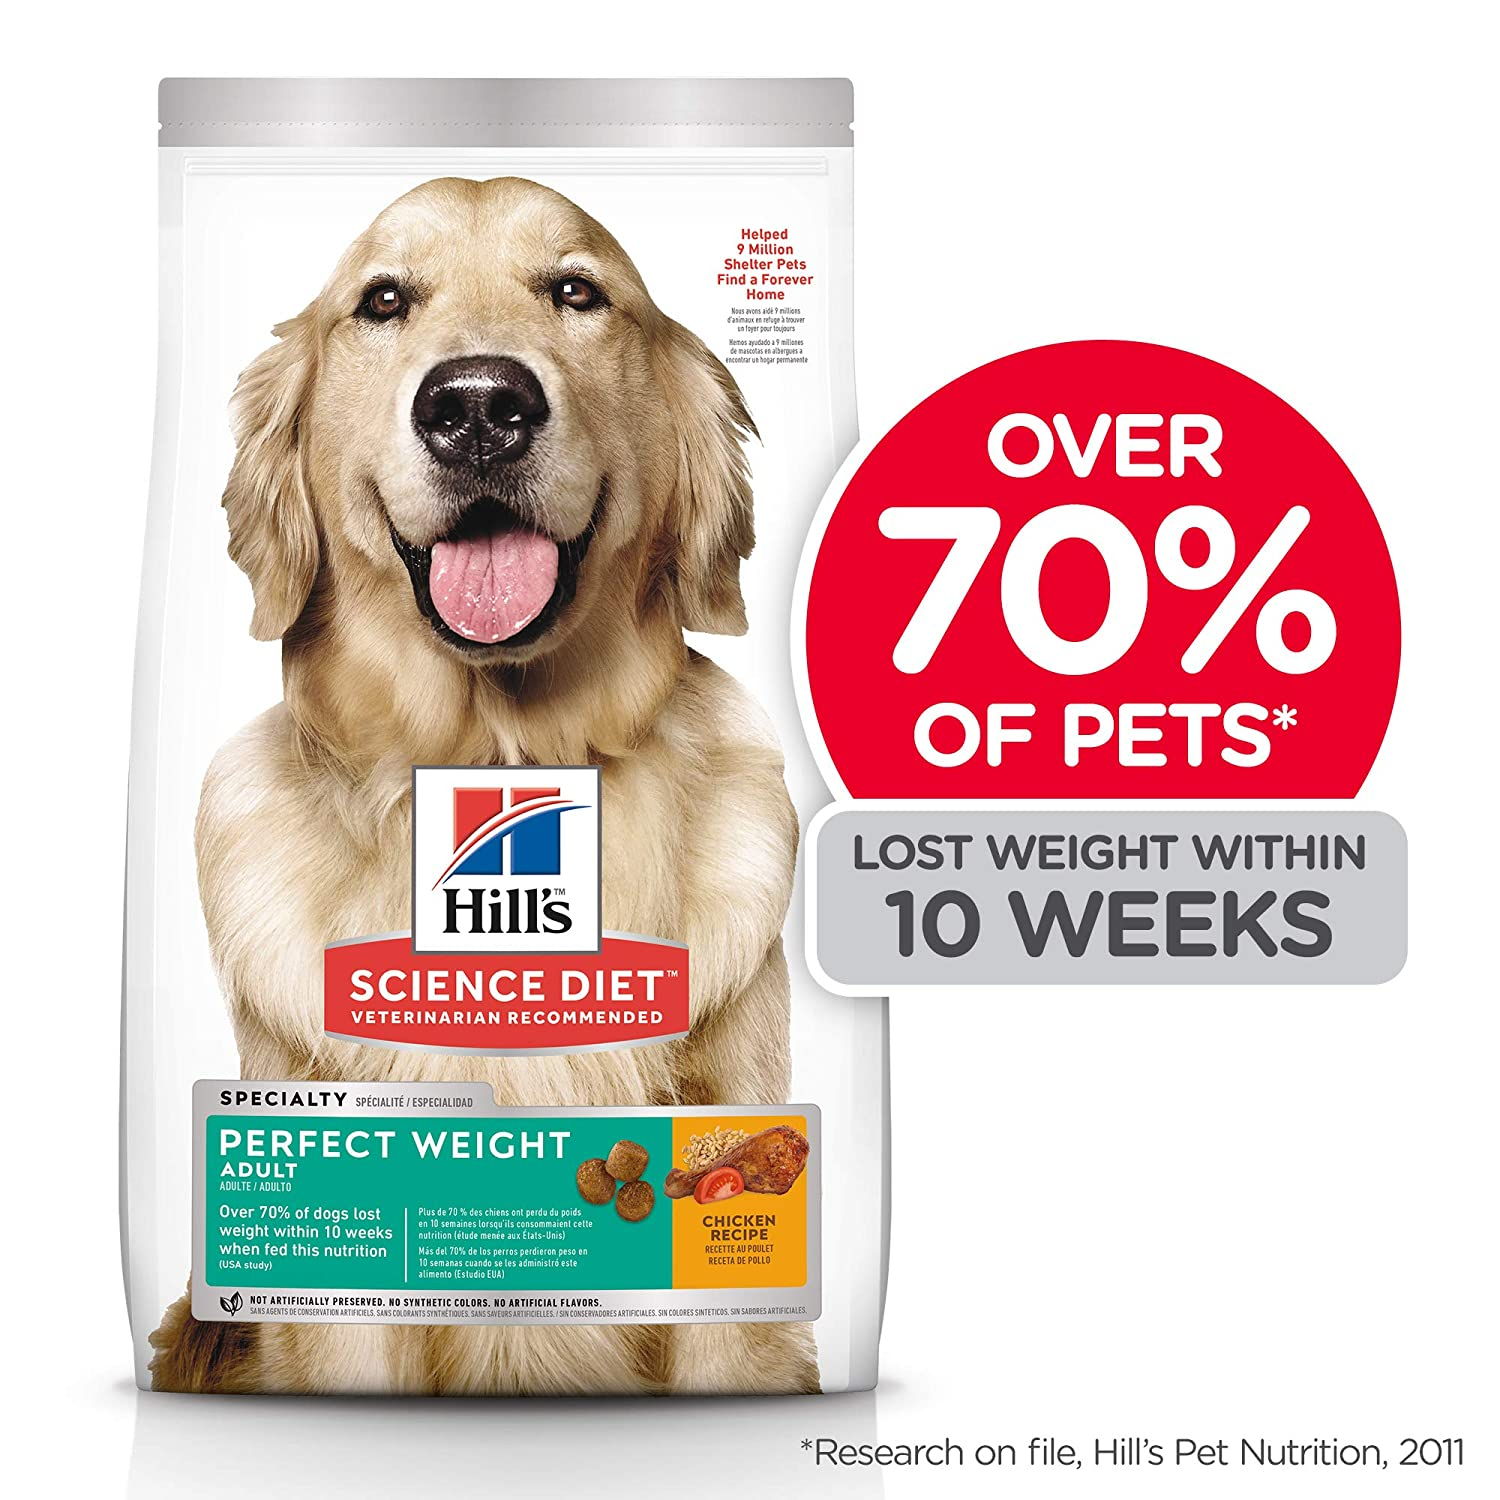 5. Hill's Science Diet Adult Perfect Weight Chicken Recipe Dry Dog Food